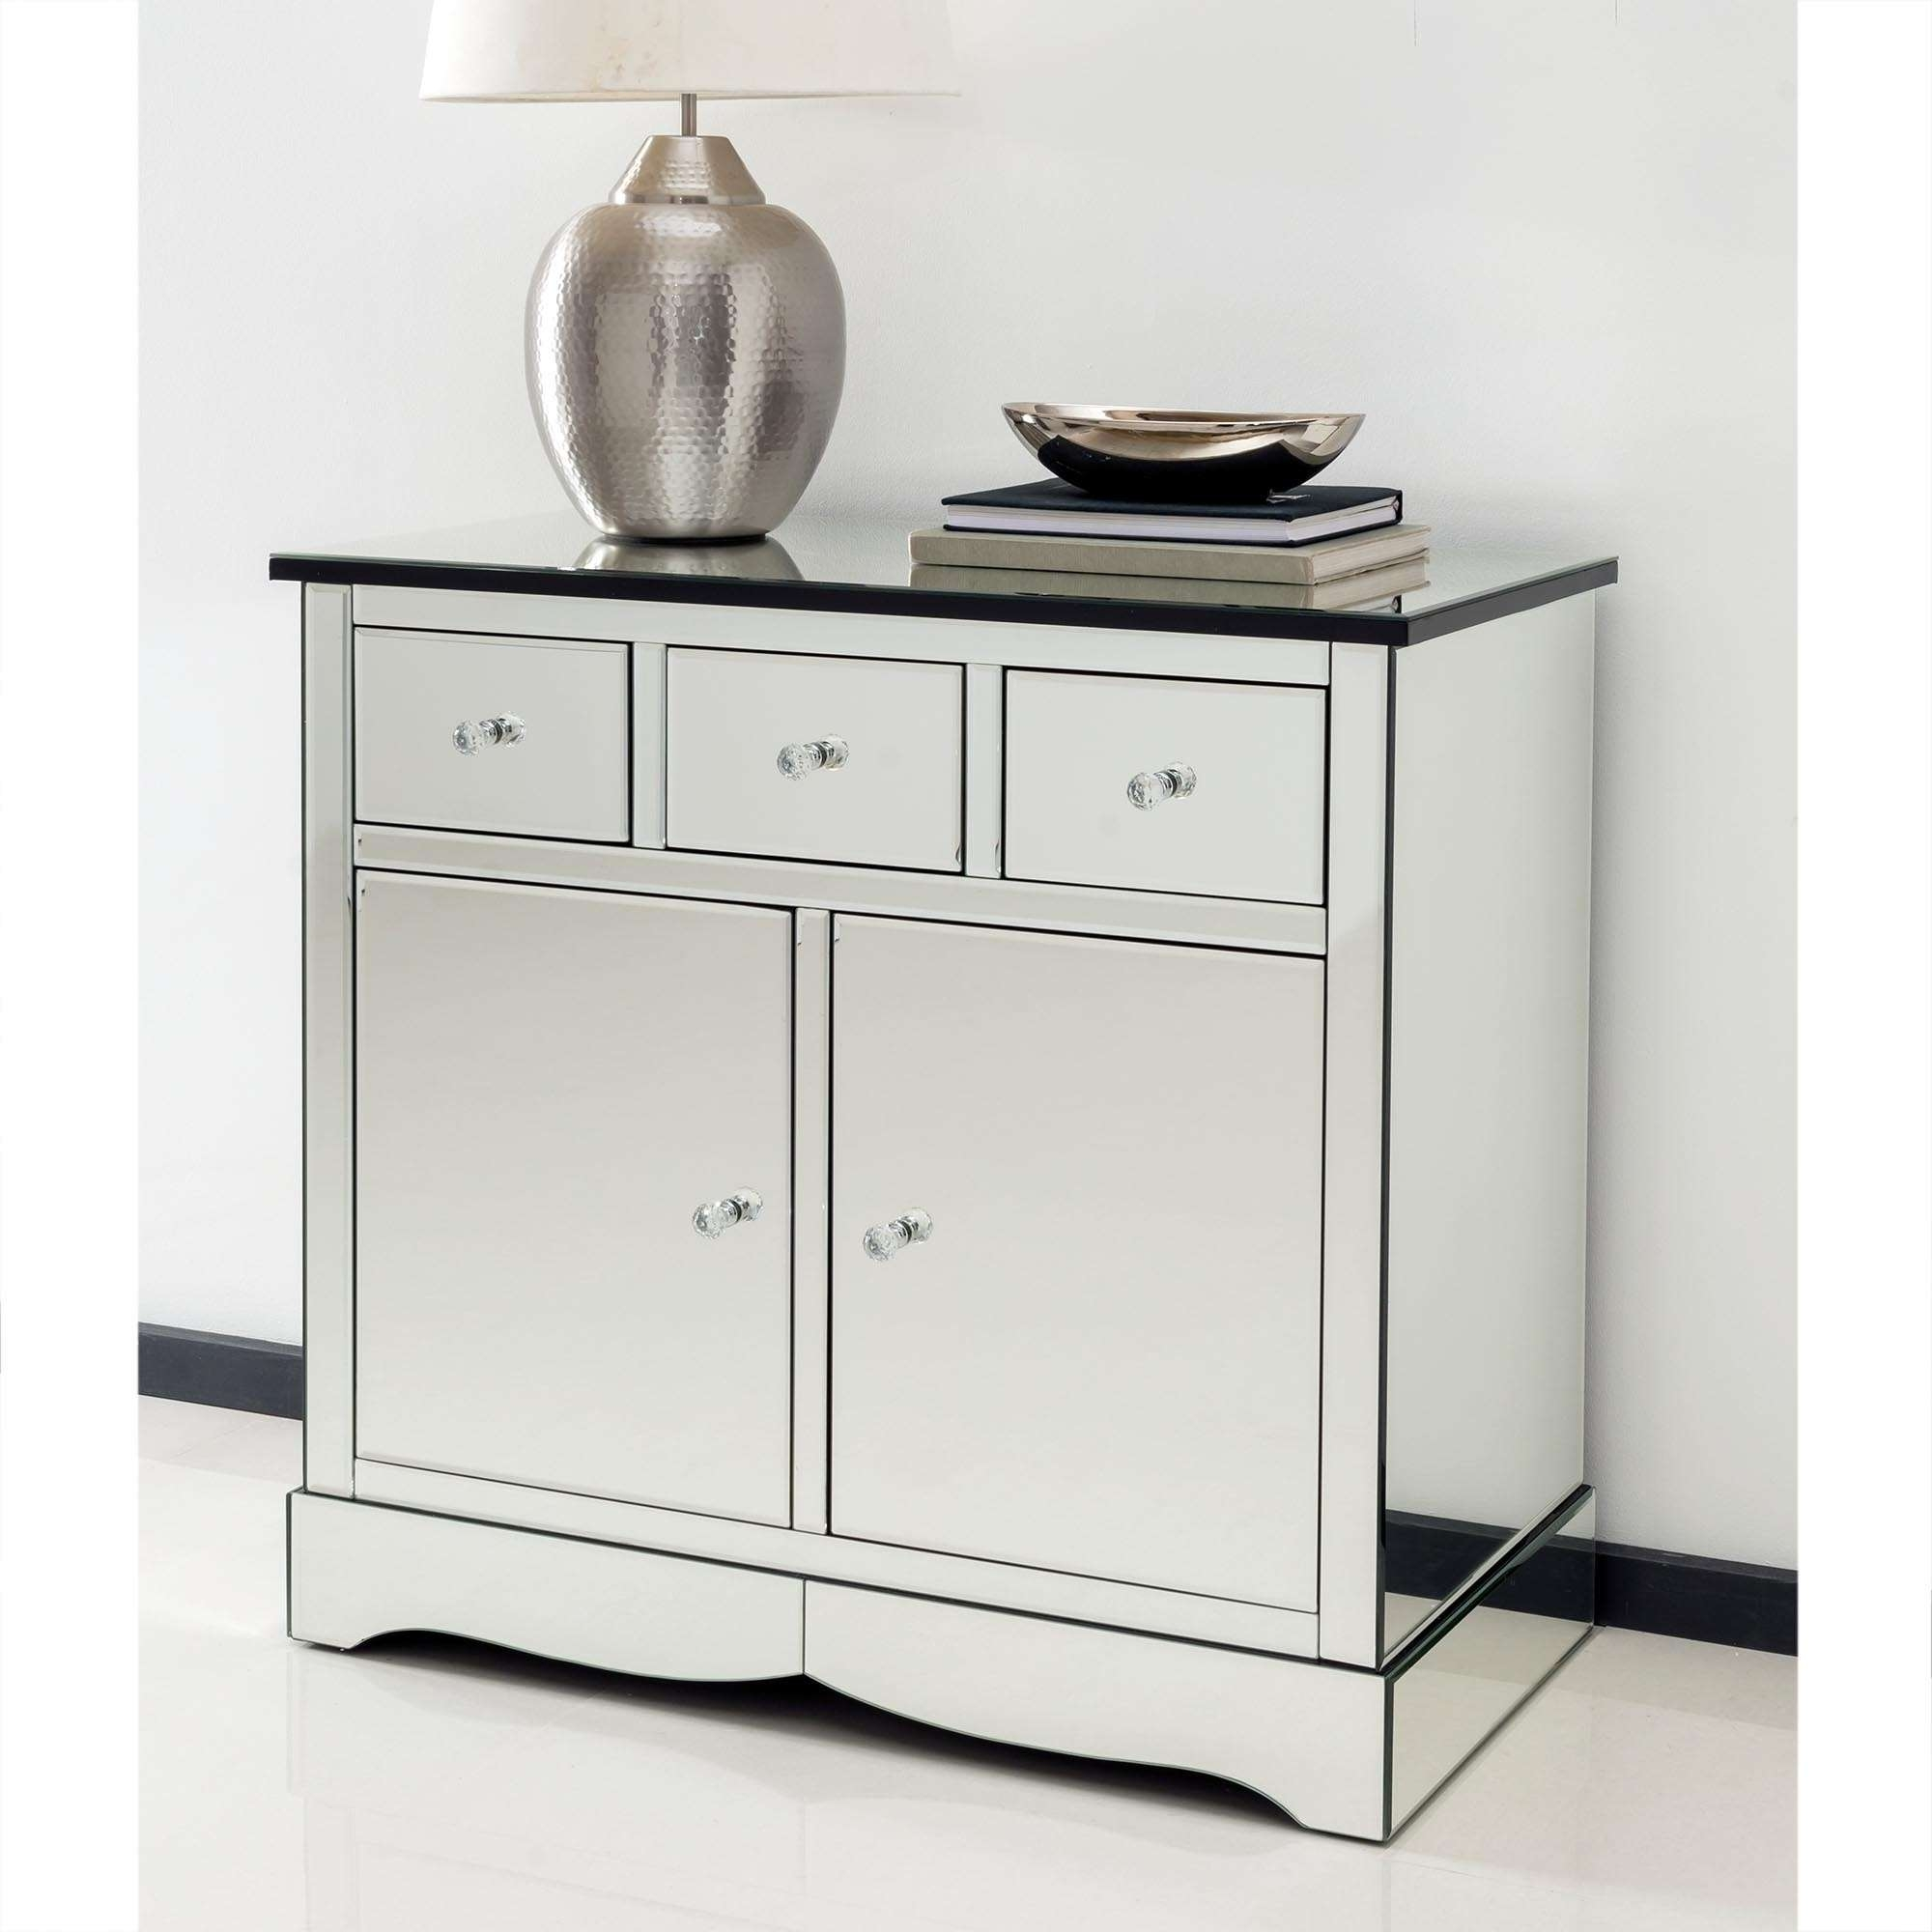 Romano Crystal Mirrored Cabinet With Cupboards & Drawers – French Throughout Mirrored Sideboards (View 3 of 20)